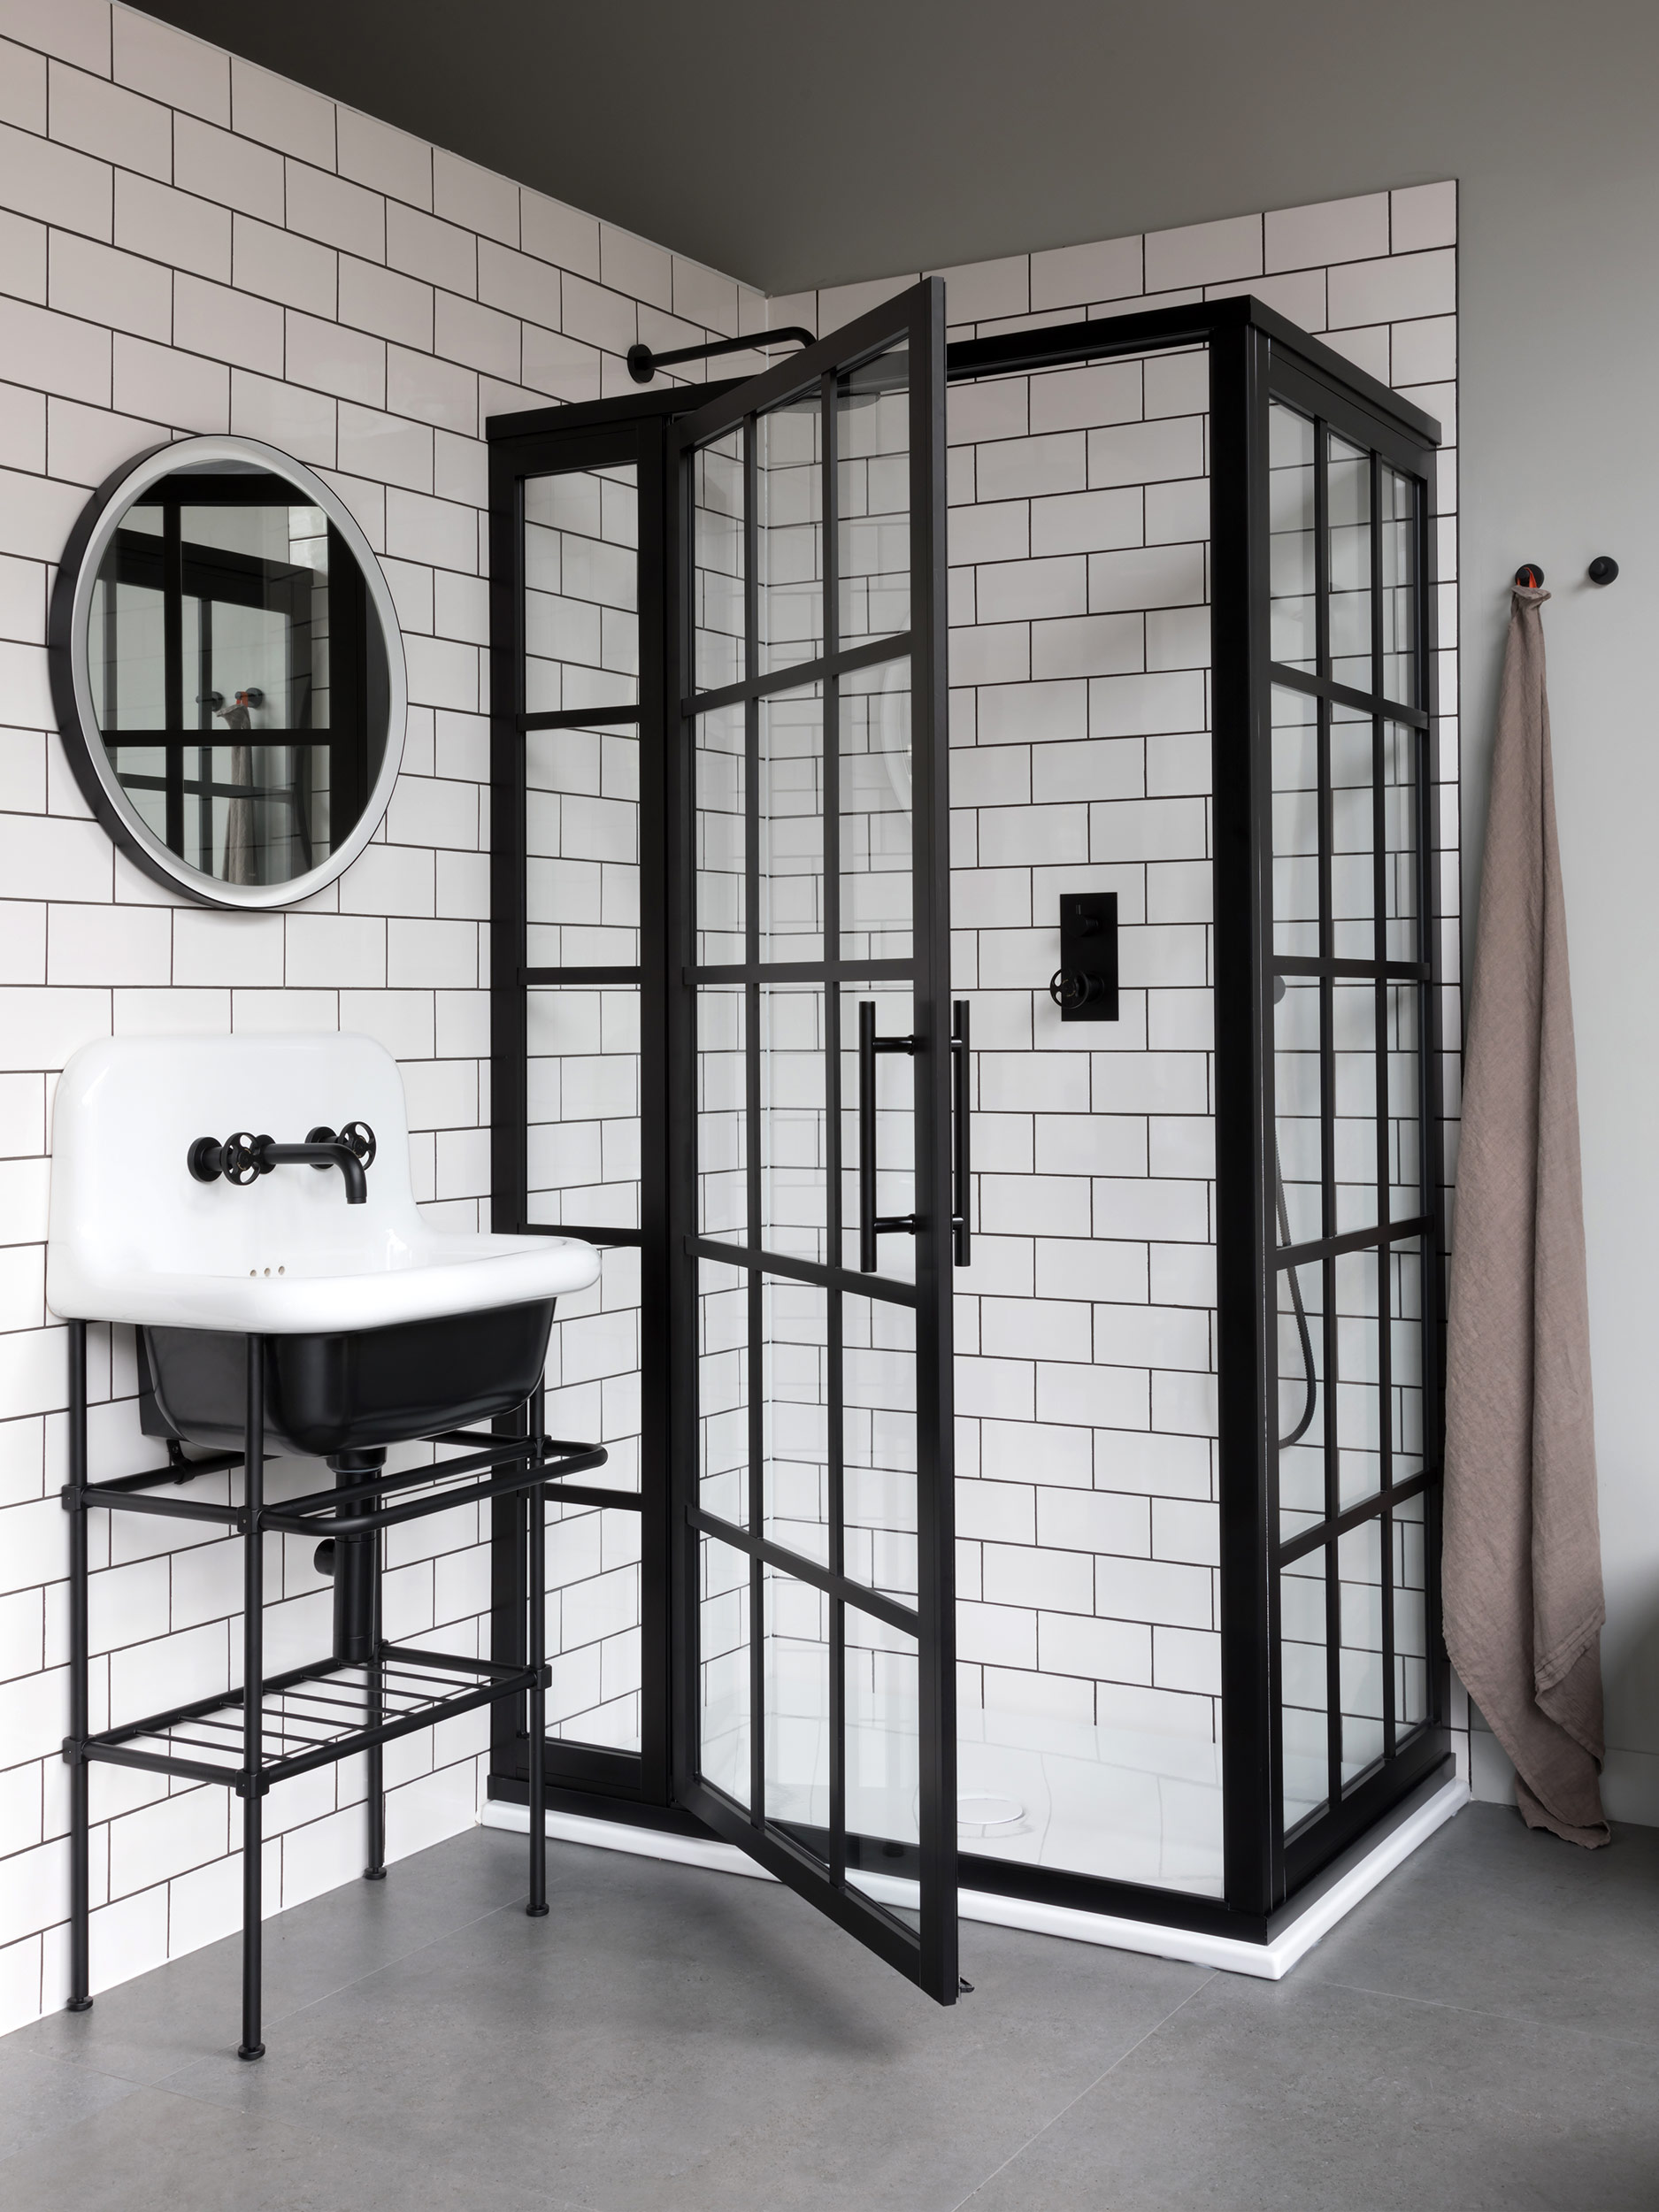 West One Bathrooms Notting Hill Showroom Westbourne Park Road 8a